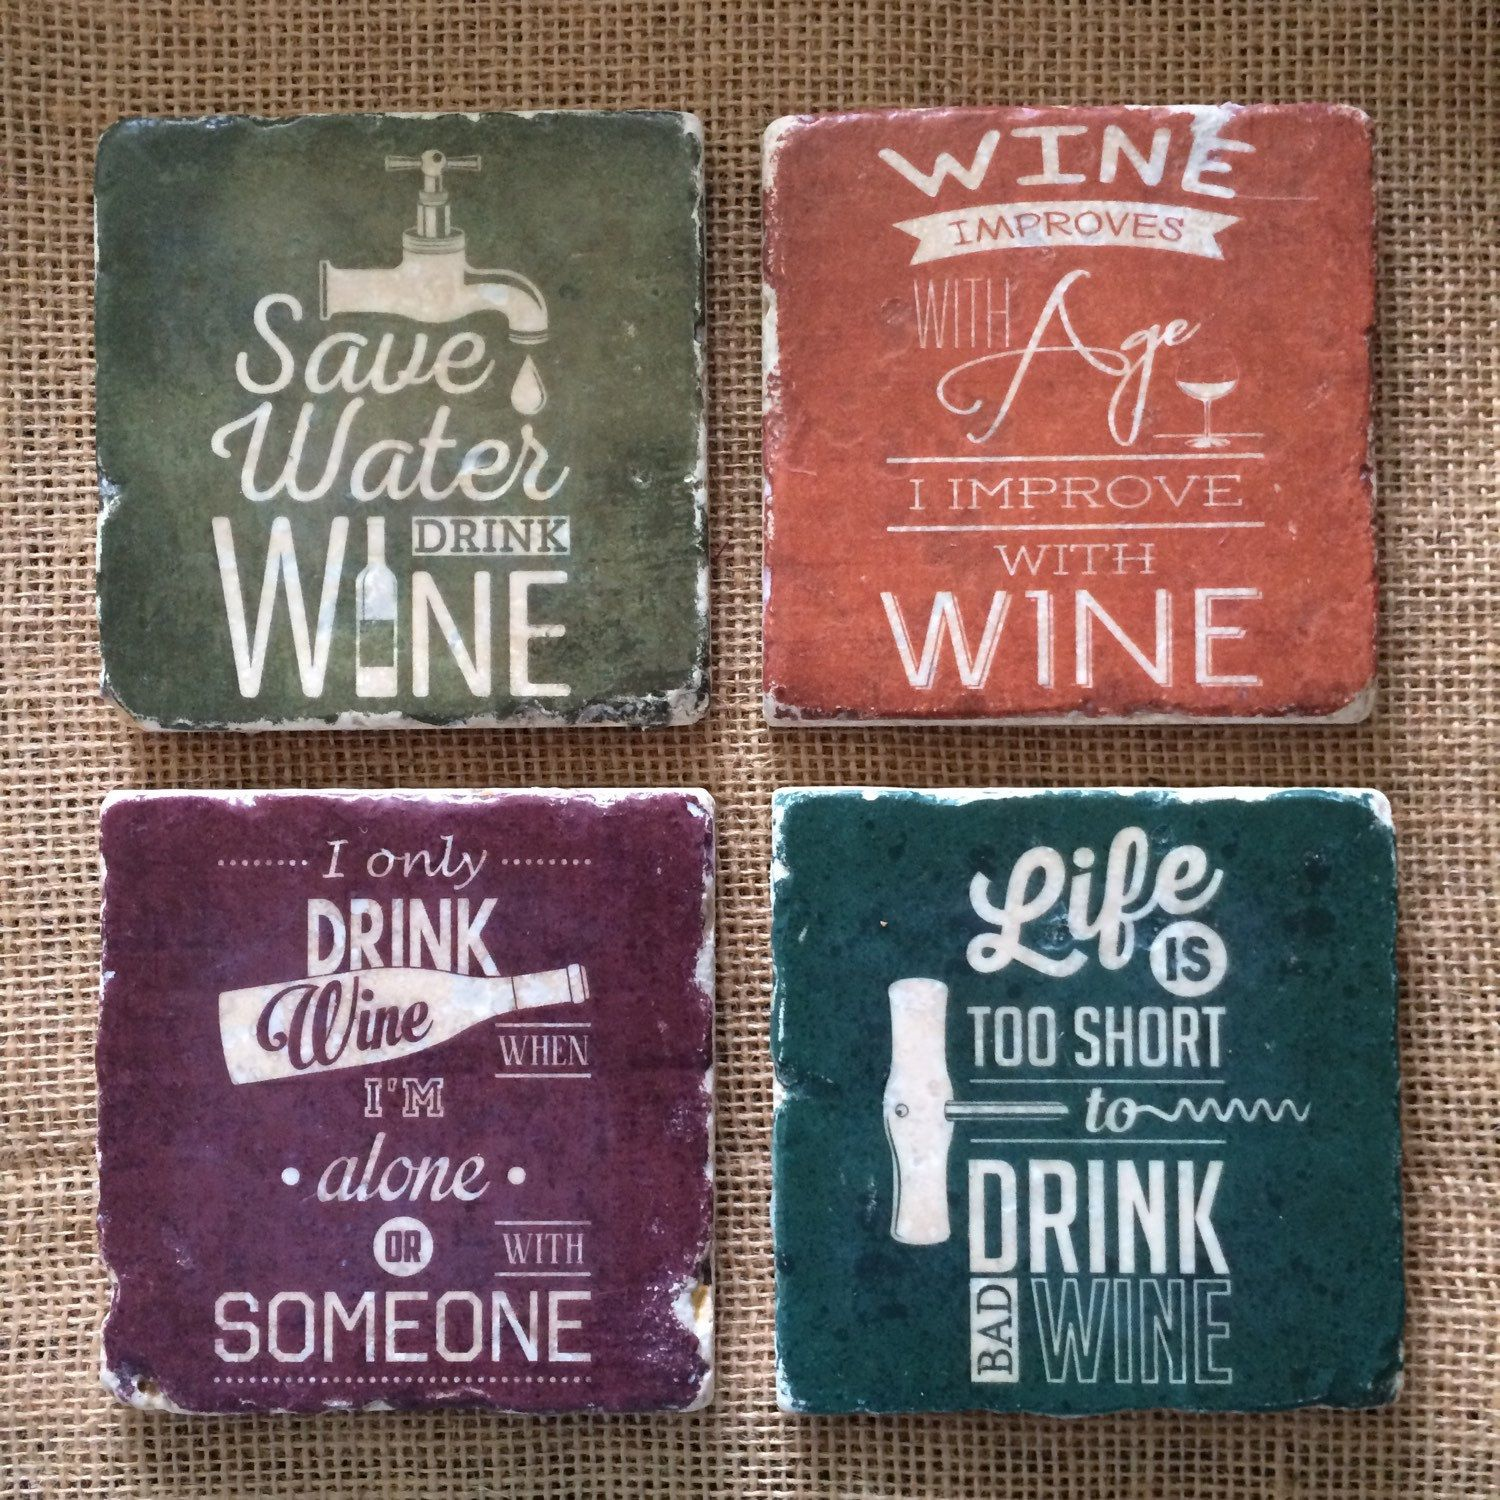 Funny Wine Sayings Natural Travertine Tile Coasters Gift For Wine Lovers Set Of 4 Wine Quotes Funny Gifts For Wine Lovers Wine Quotes